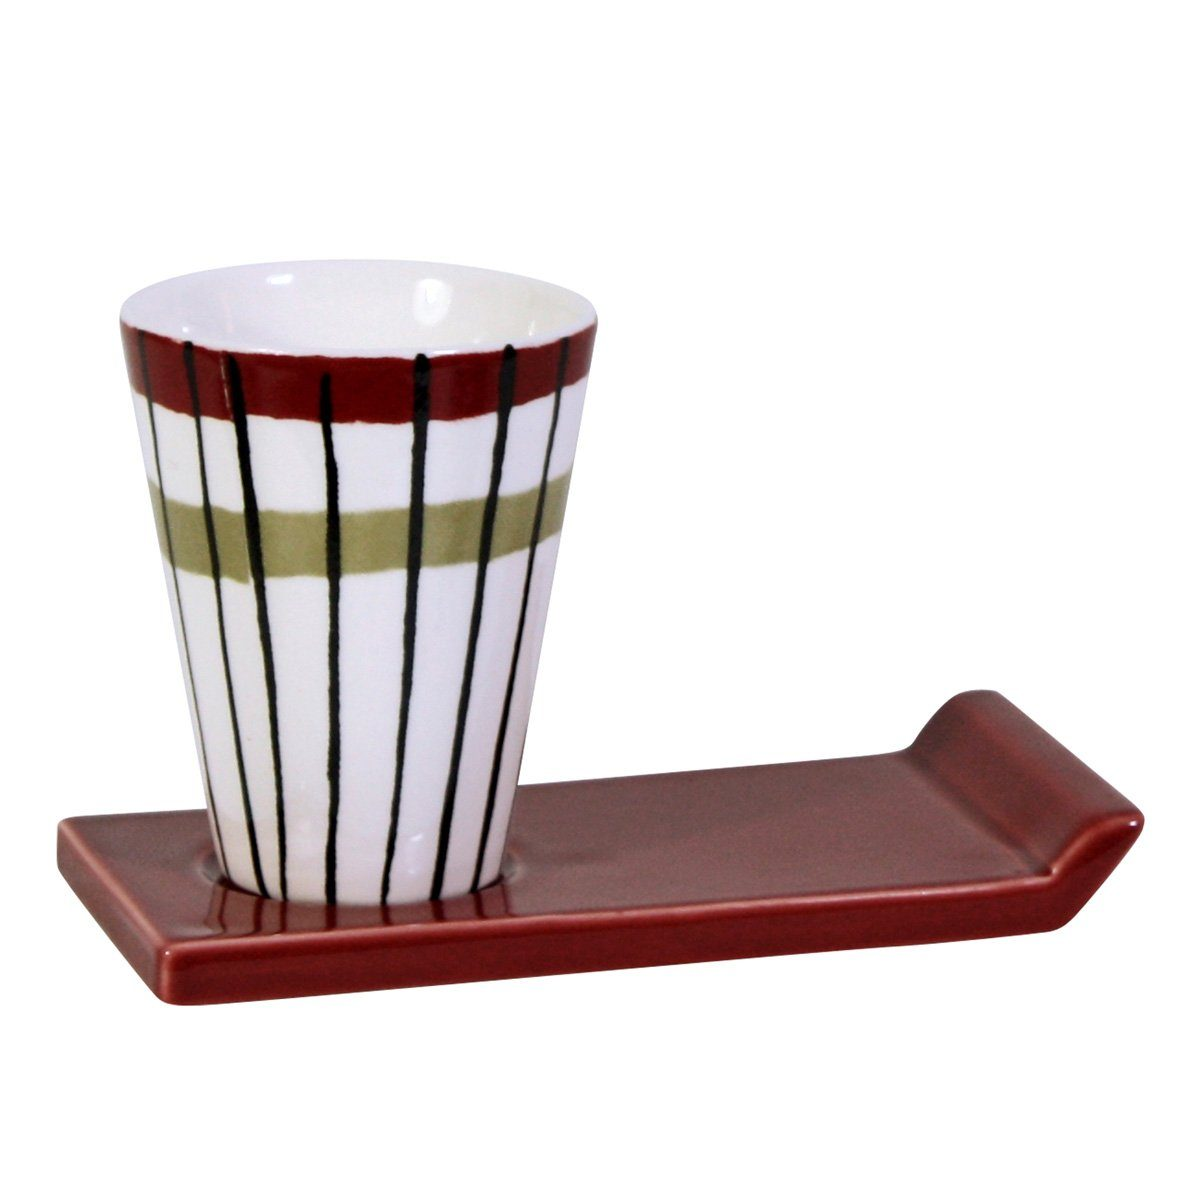 CULTDESIGN Cult Design Glühwein Becher Retro gestreift